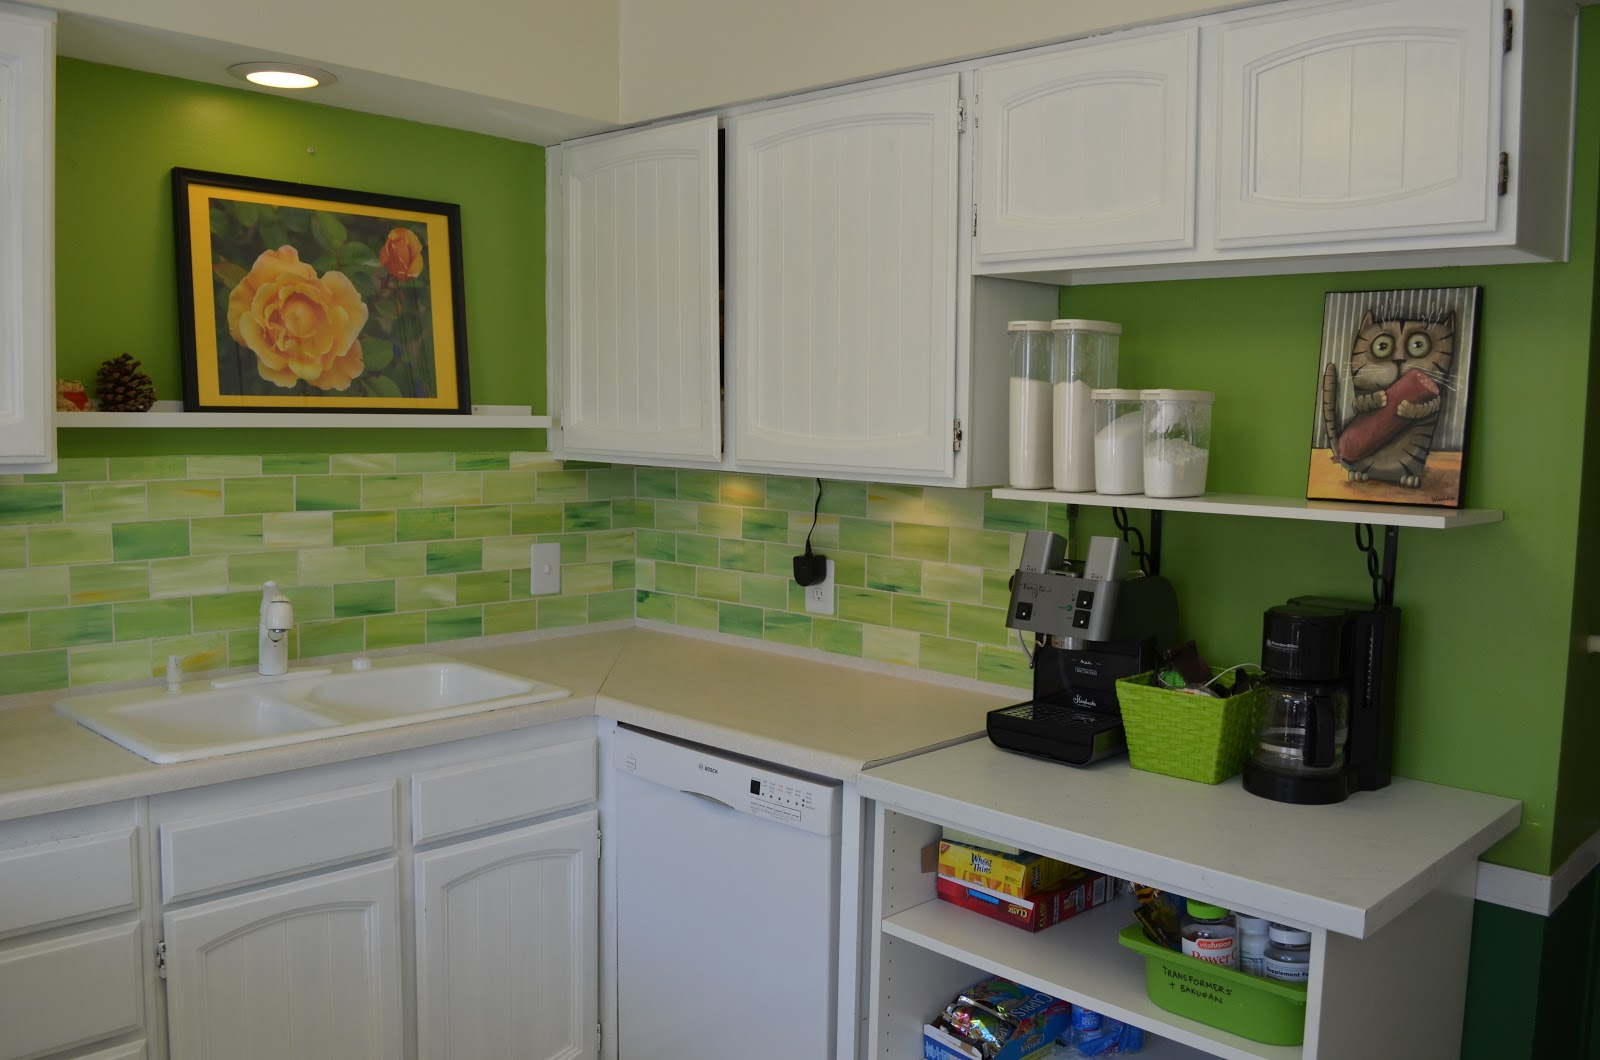 Kitchen Backsplash Green Glass Tile fine kitchen backsplash contact paper home design ideas r inside